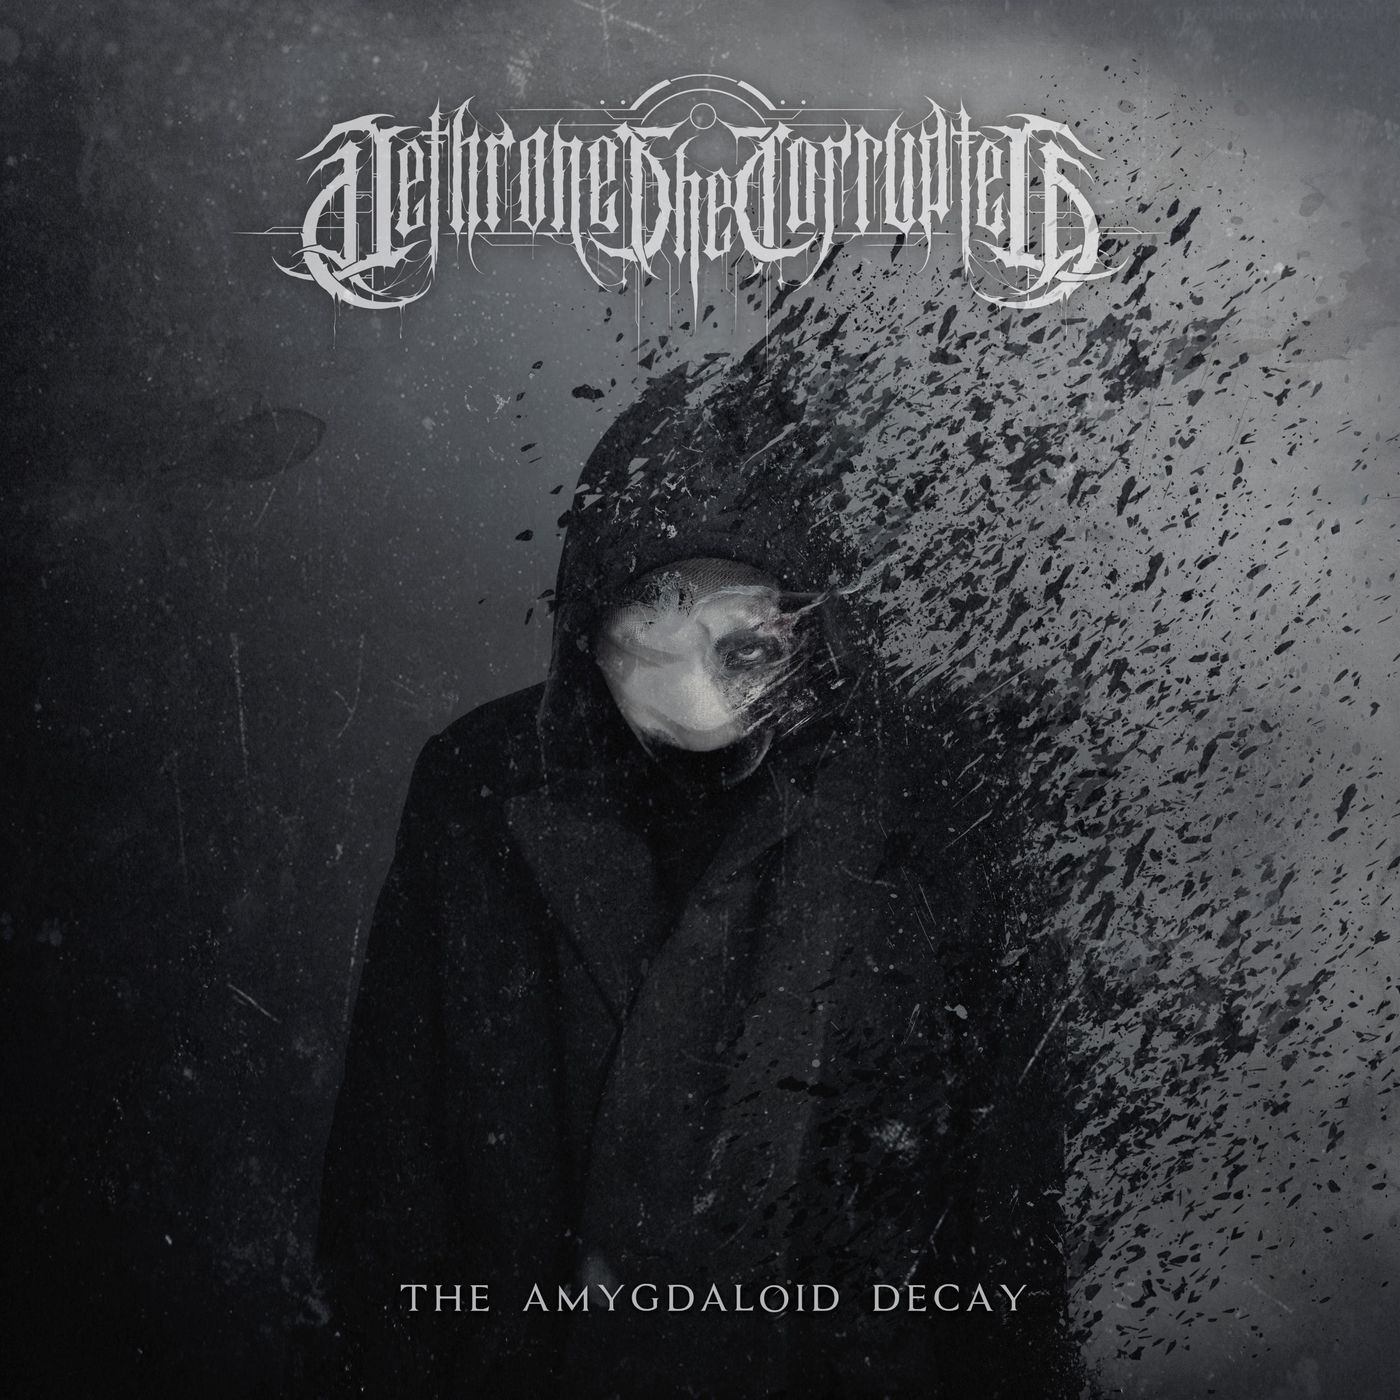 Dethrone the Corrupted - The Amygdaloid Decay [EP] (2021)